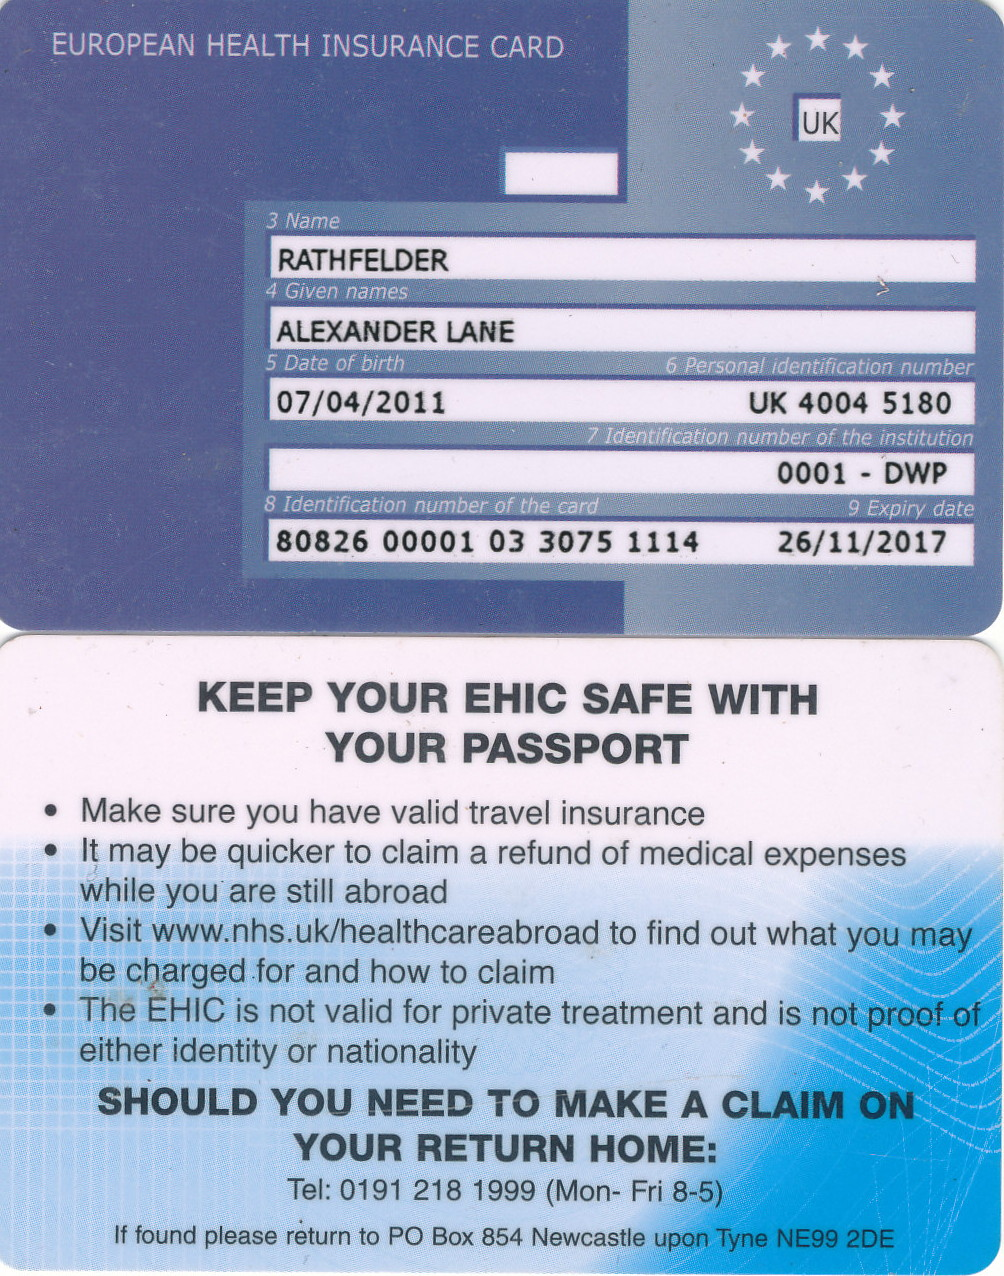 Renew Ehic Card Uk >> A Look At What Will Happen To The Ehic After Brexit